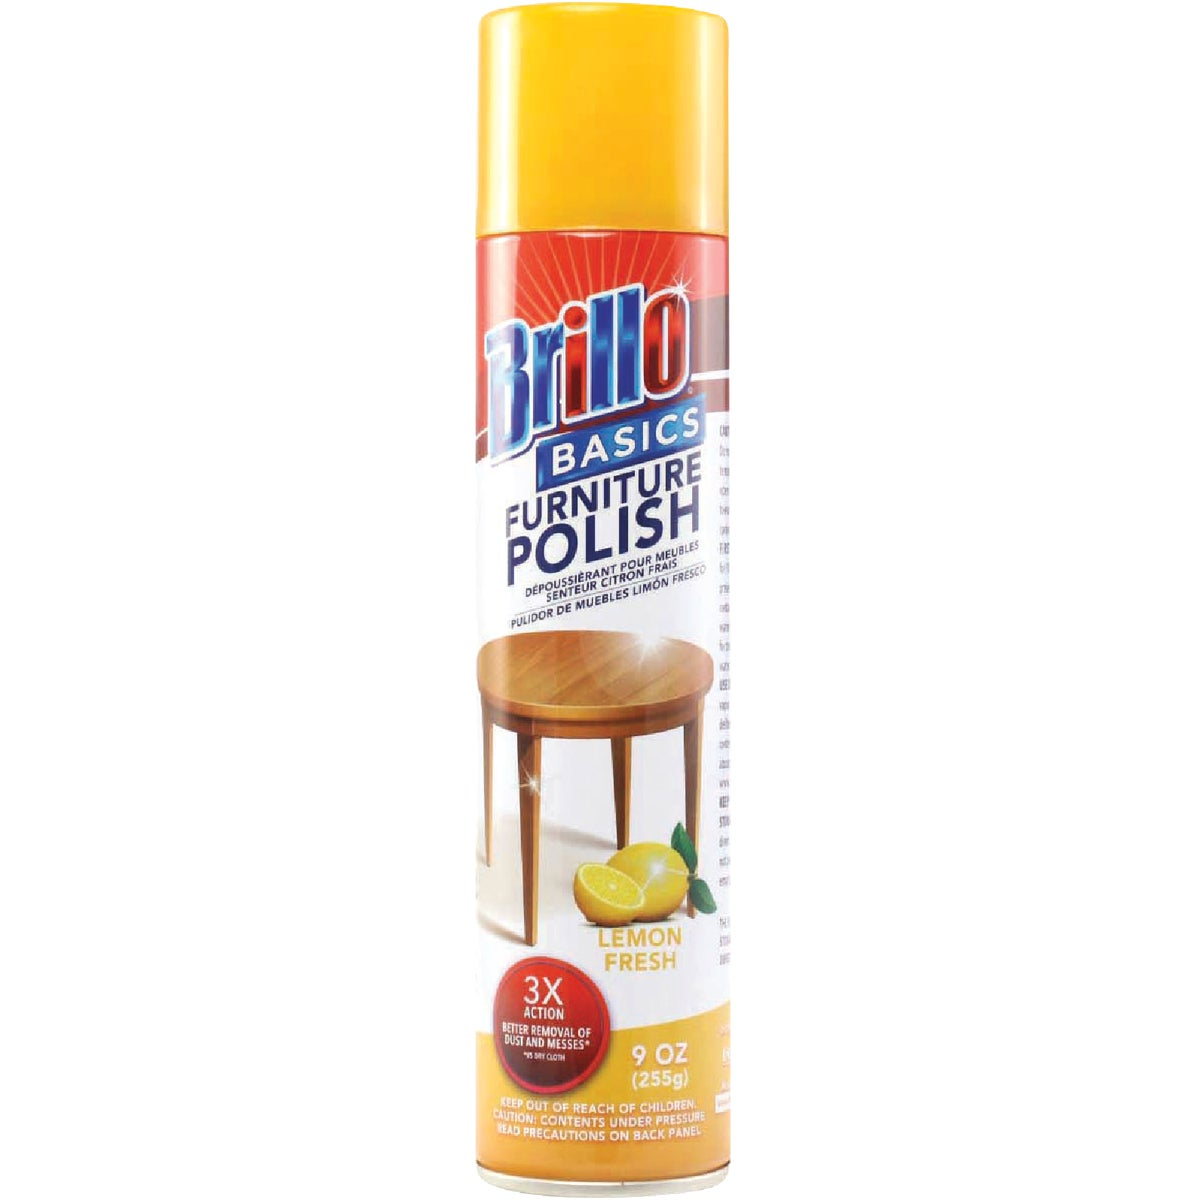 ORANGE FURNITURE POLISH - 90831 by Personal Care Prod